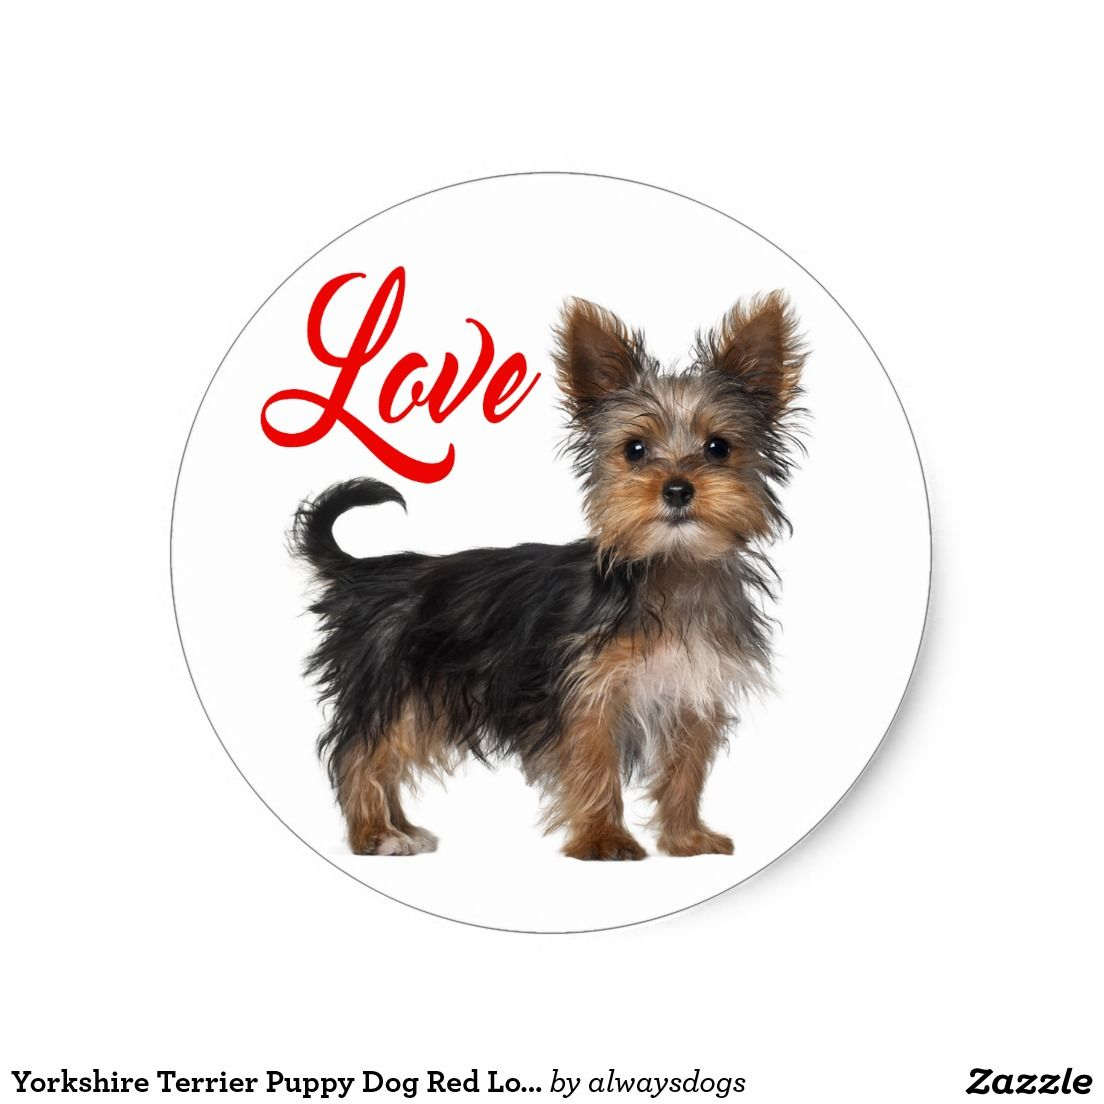 Yorkshire Terrier Puppy Dog Red Love Classic Round Sticker Yorkshire Terrier Puppies Yorkshire Terrier Dogs And Puppies